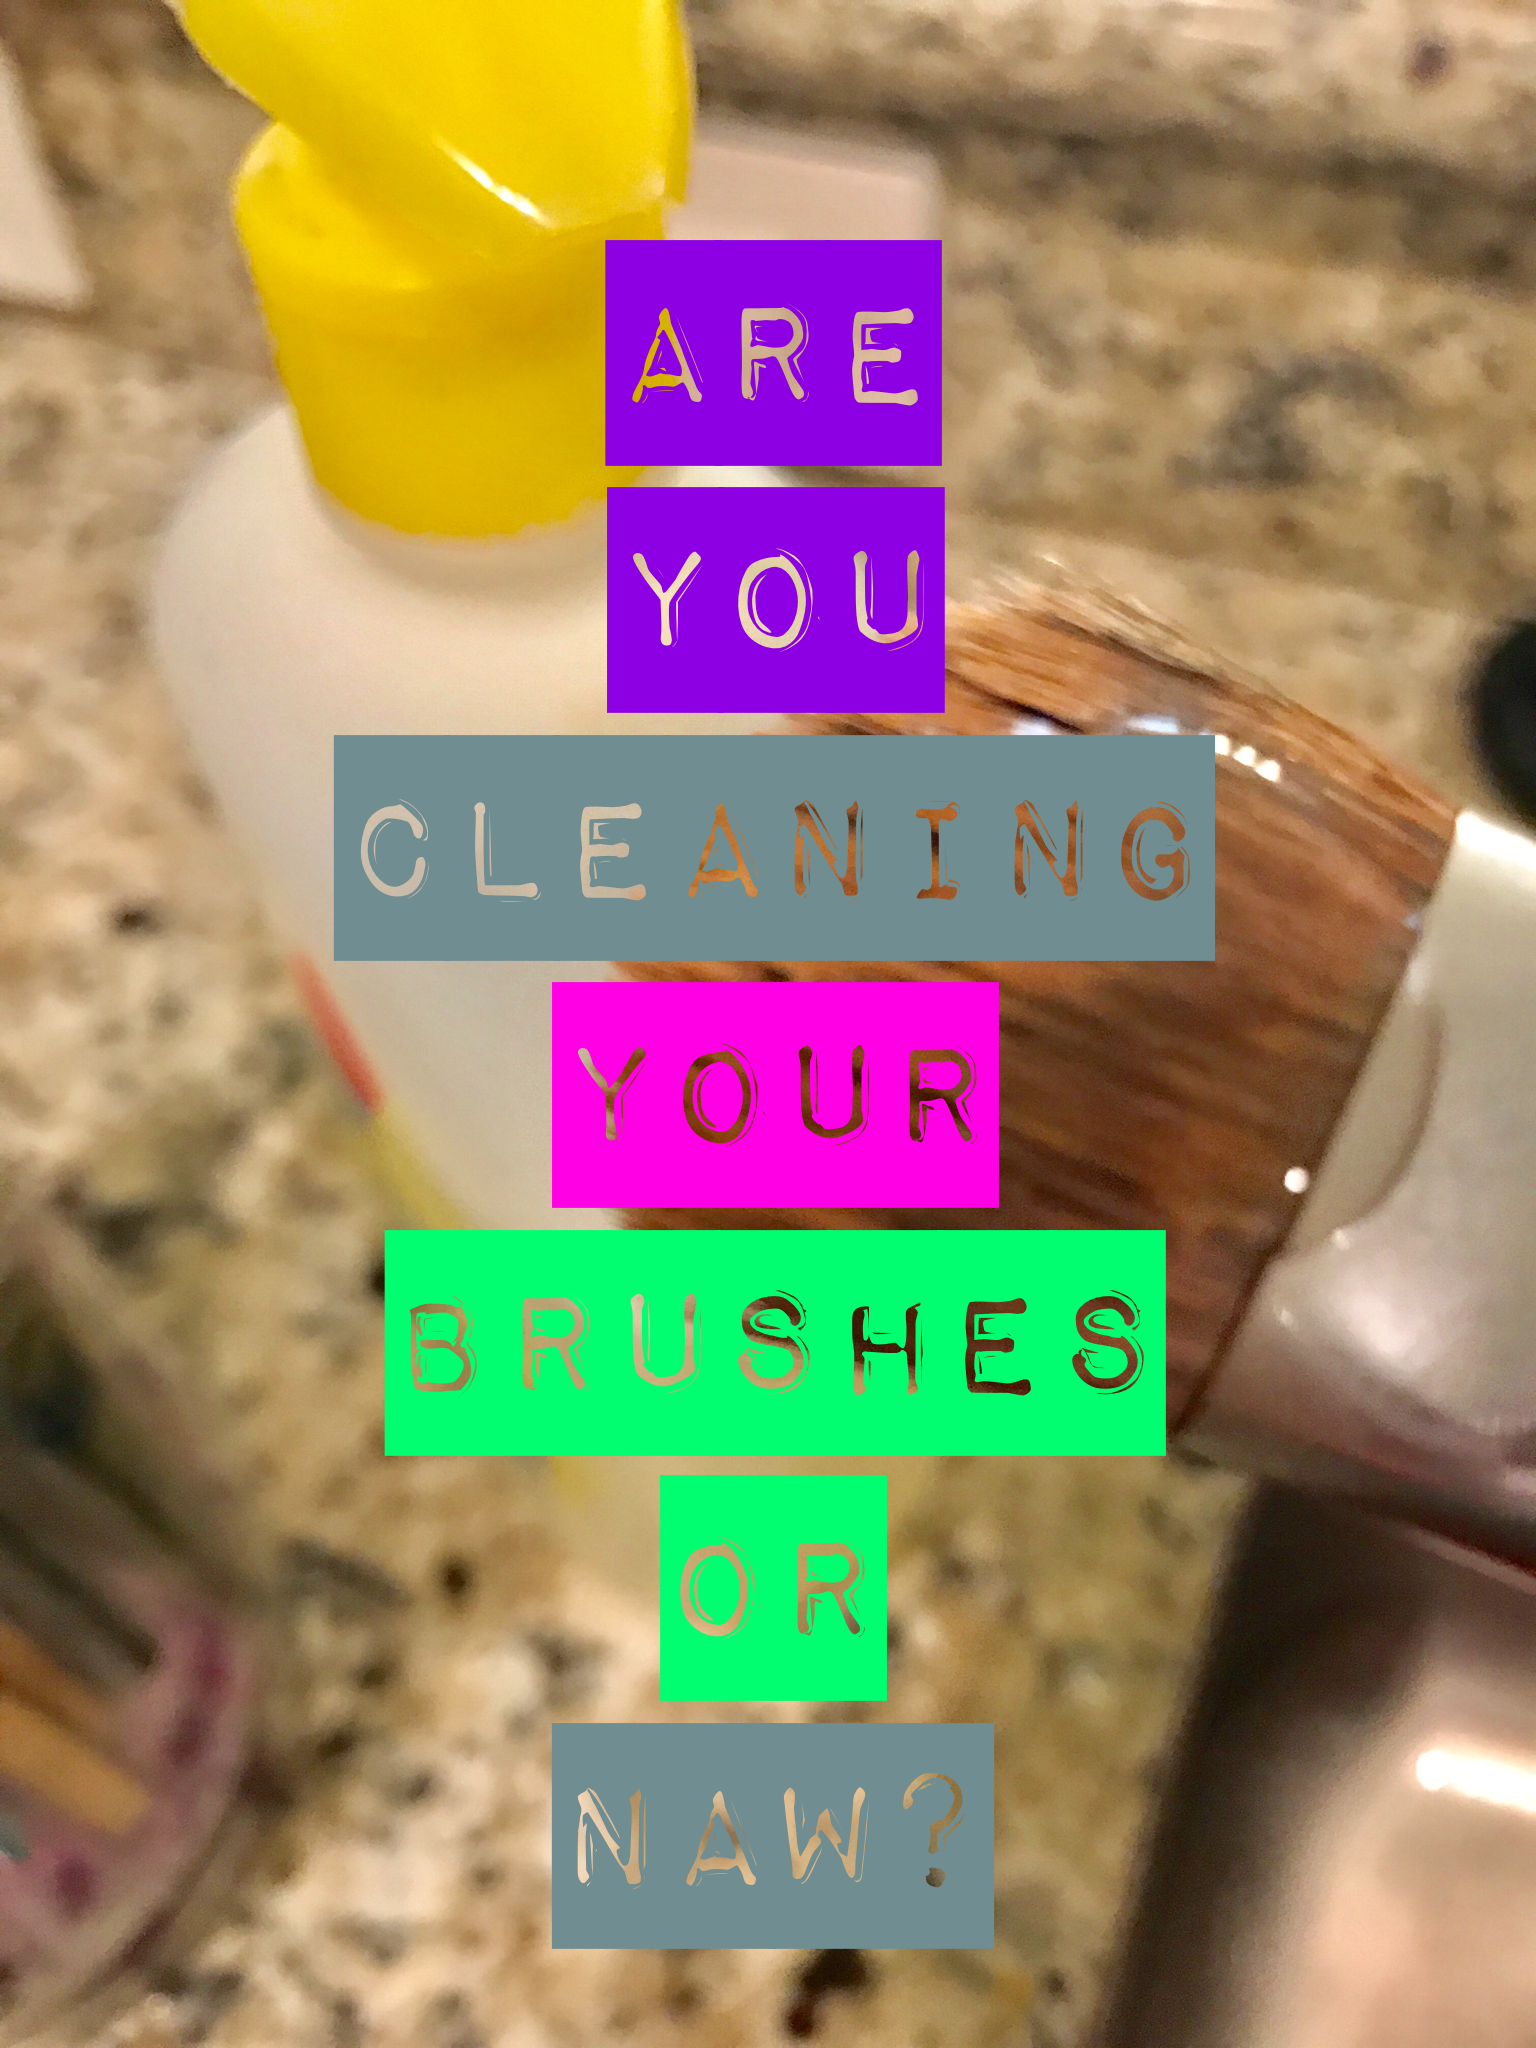 Are you cleaning your personal makeup brushes or naw?